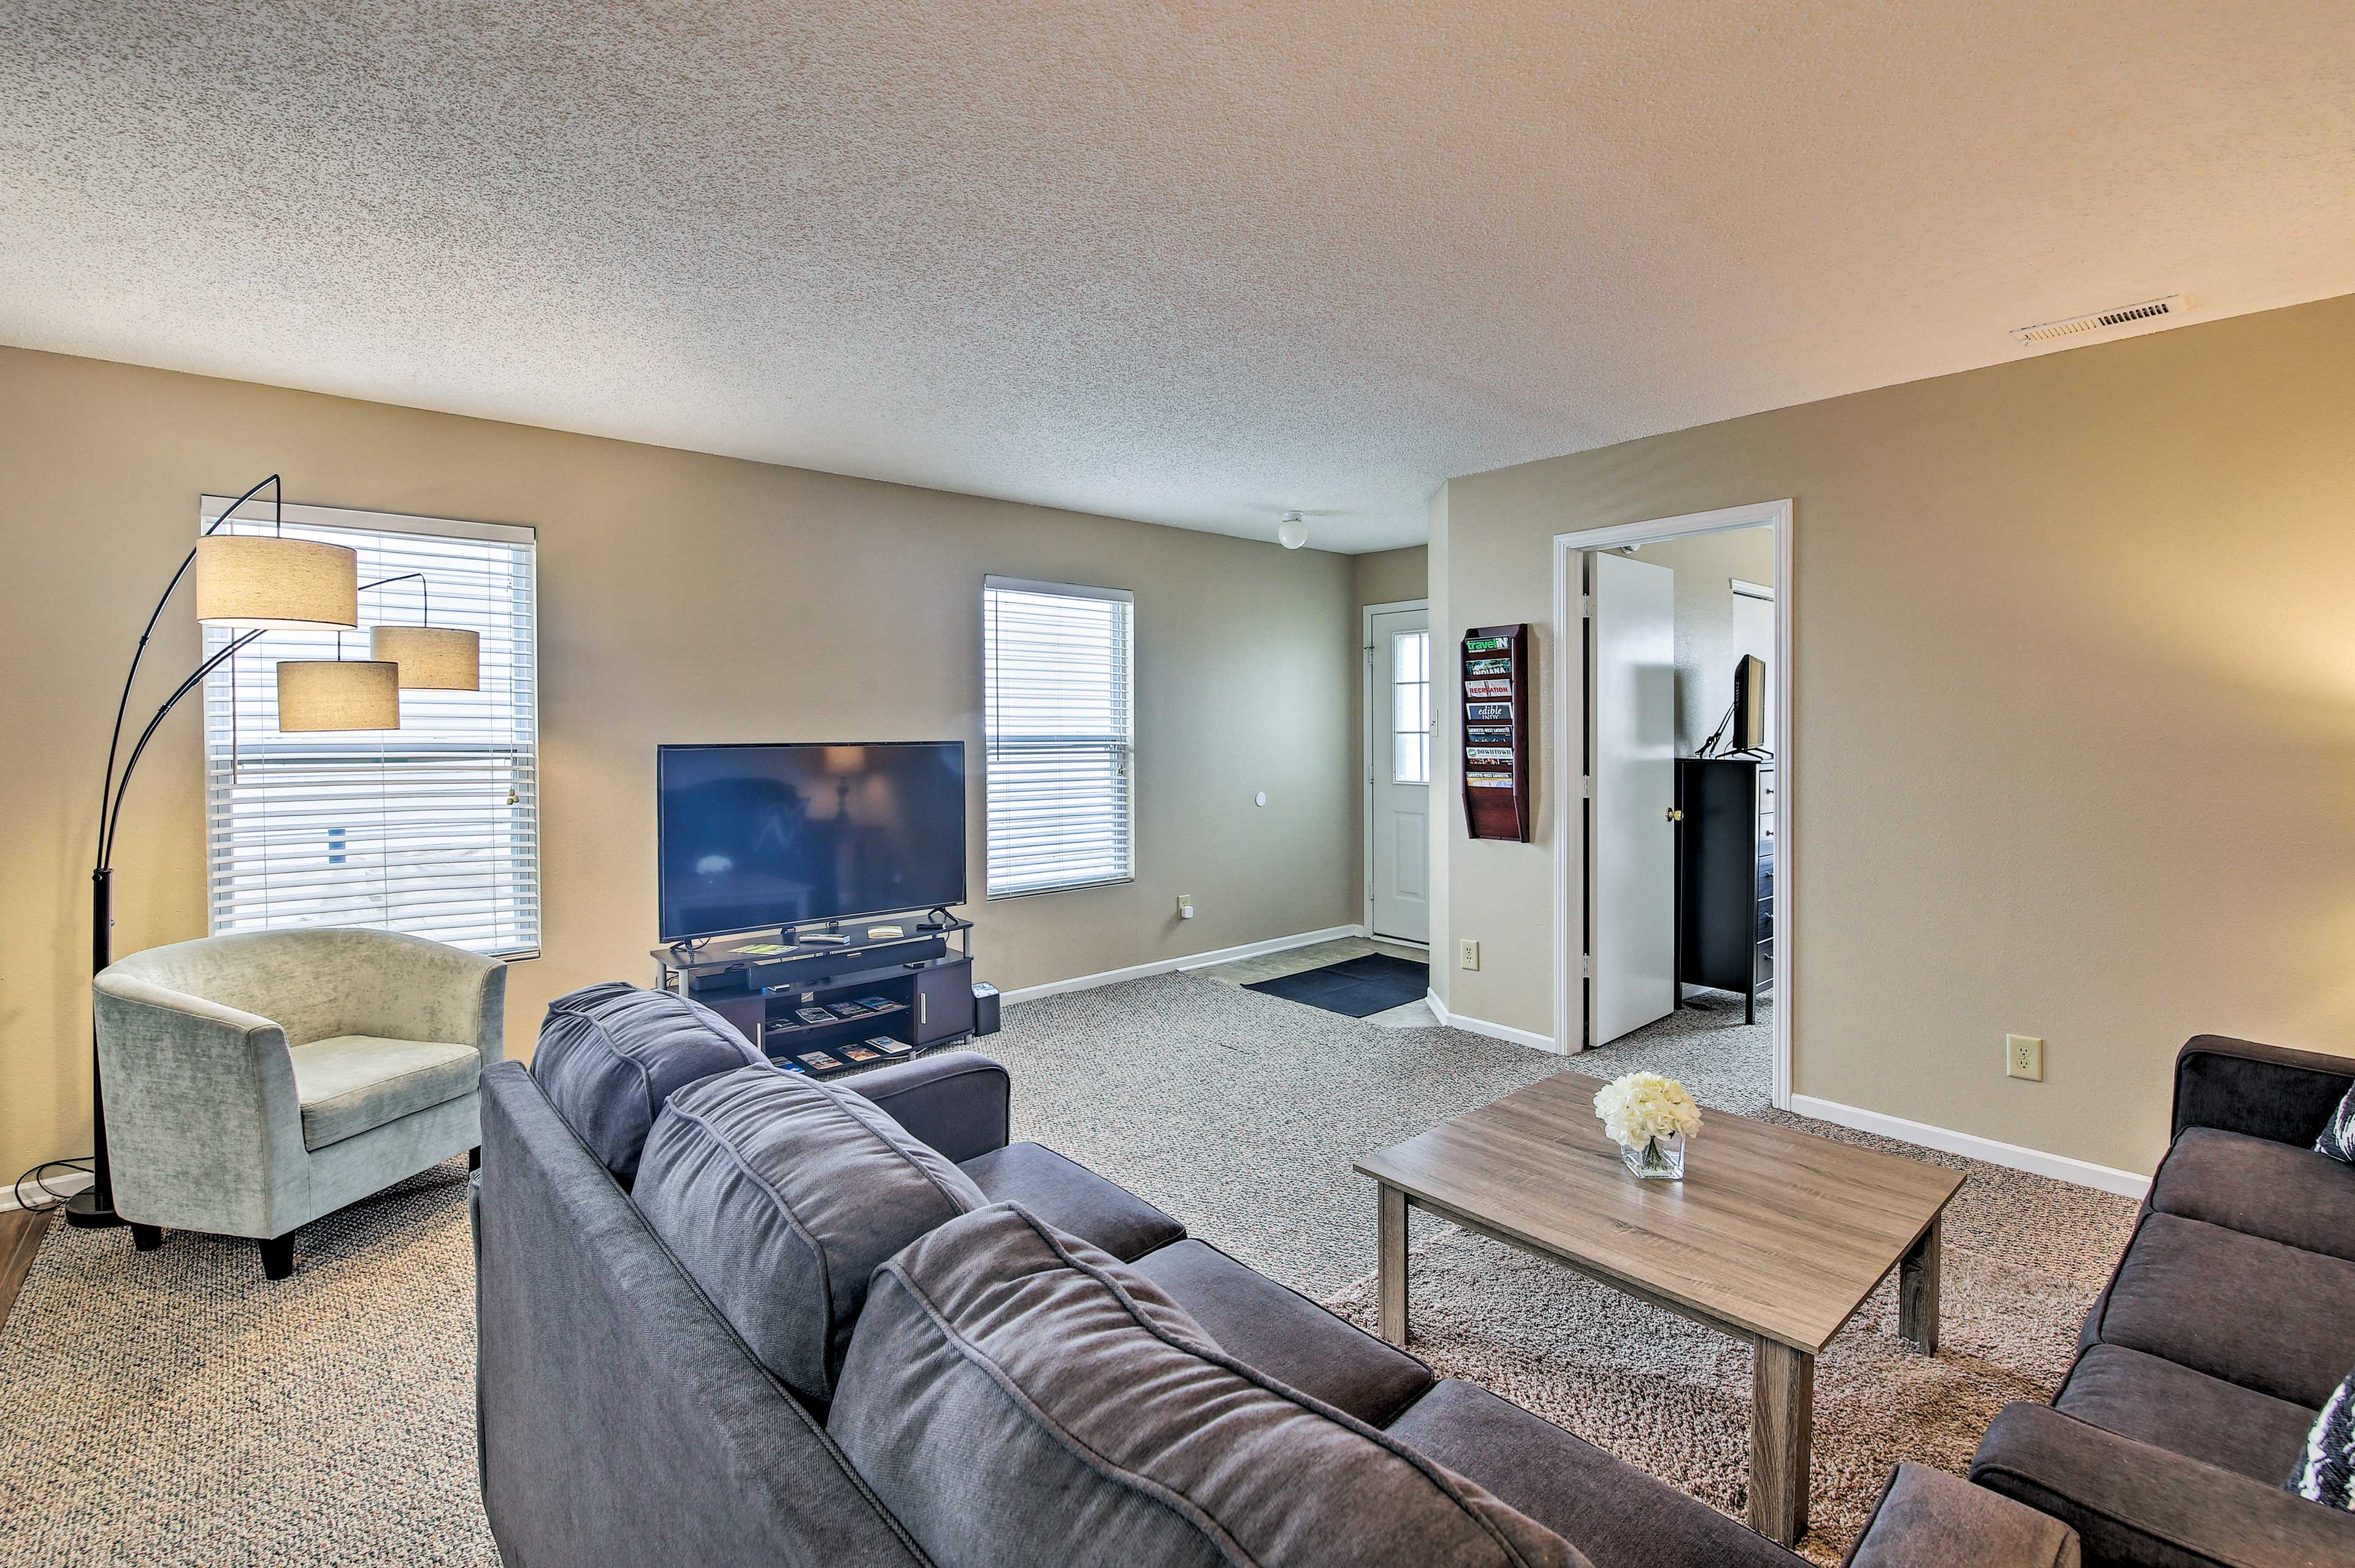 Watch a movie on the flat-screen TV in the living area.